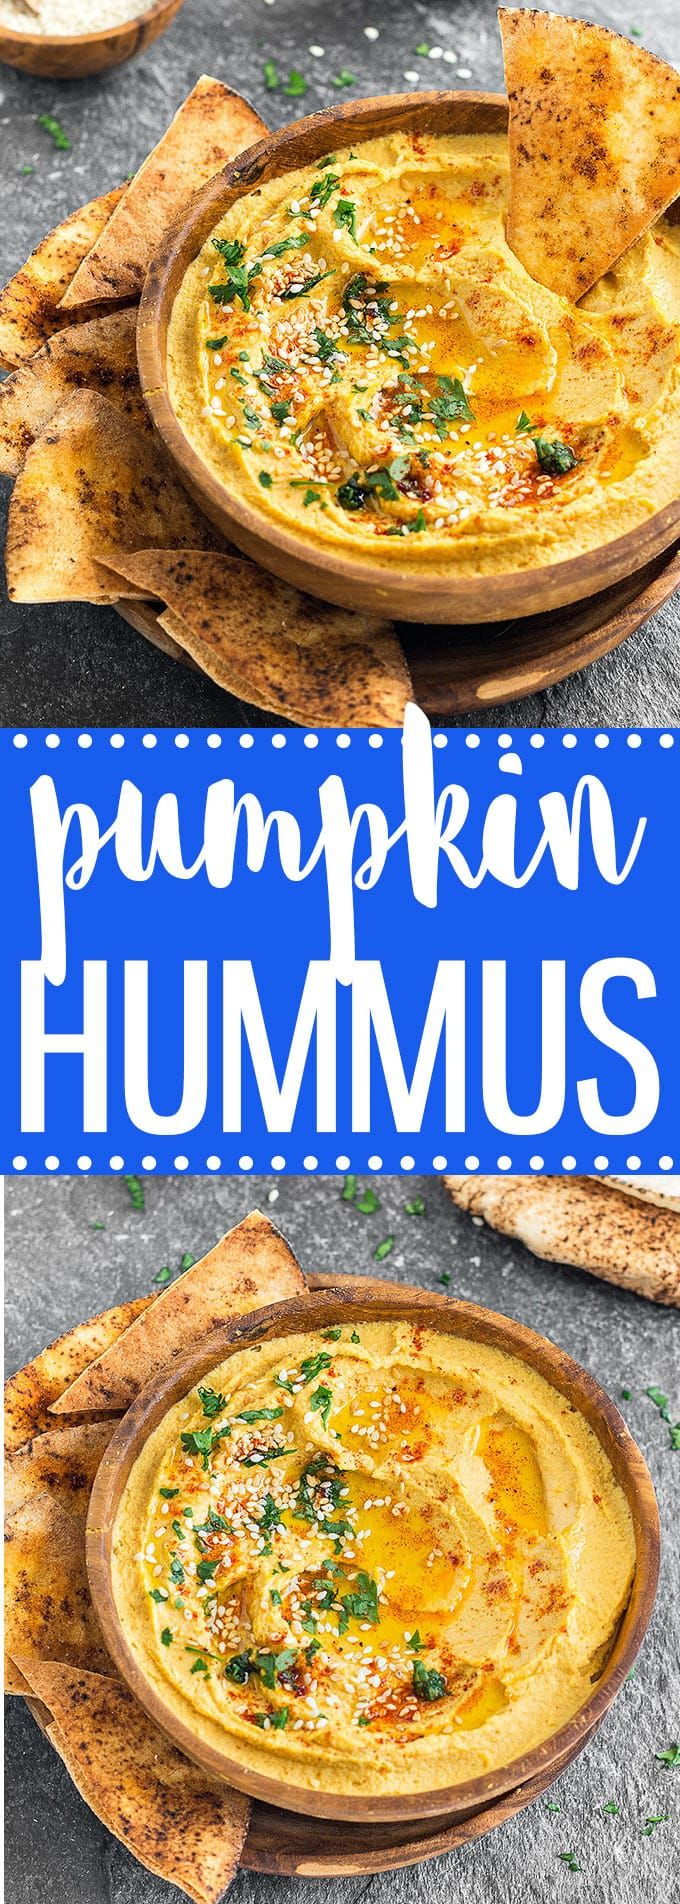 If you have pumpkin puree on hand, whip up a batch of this savory pumpkin hummus. Pair it with pita bread, crackers or veggie sticks and you have a delicious snack or appetizer ready in 5 minutes via @easyasapplepie